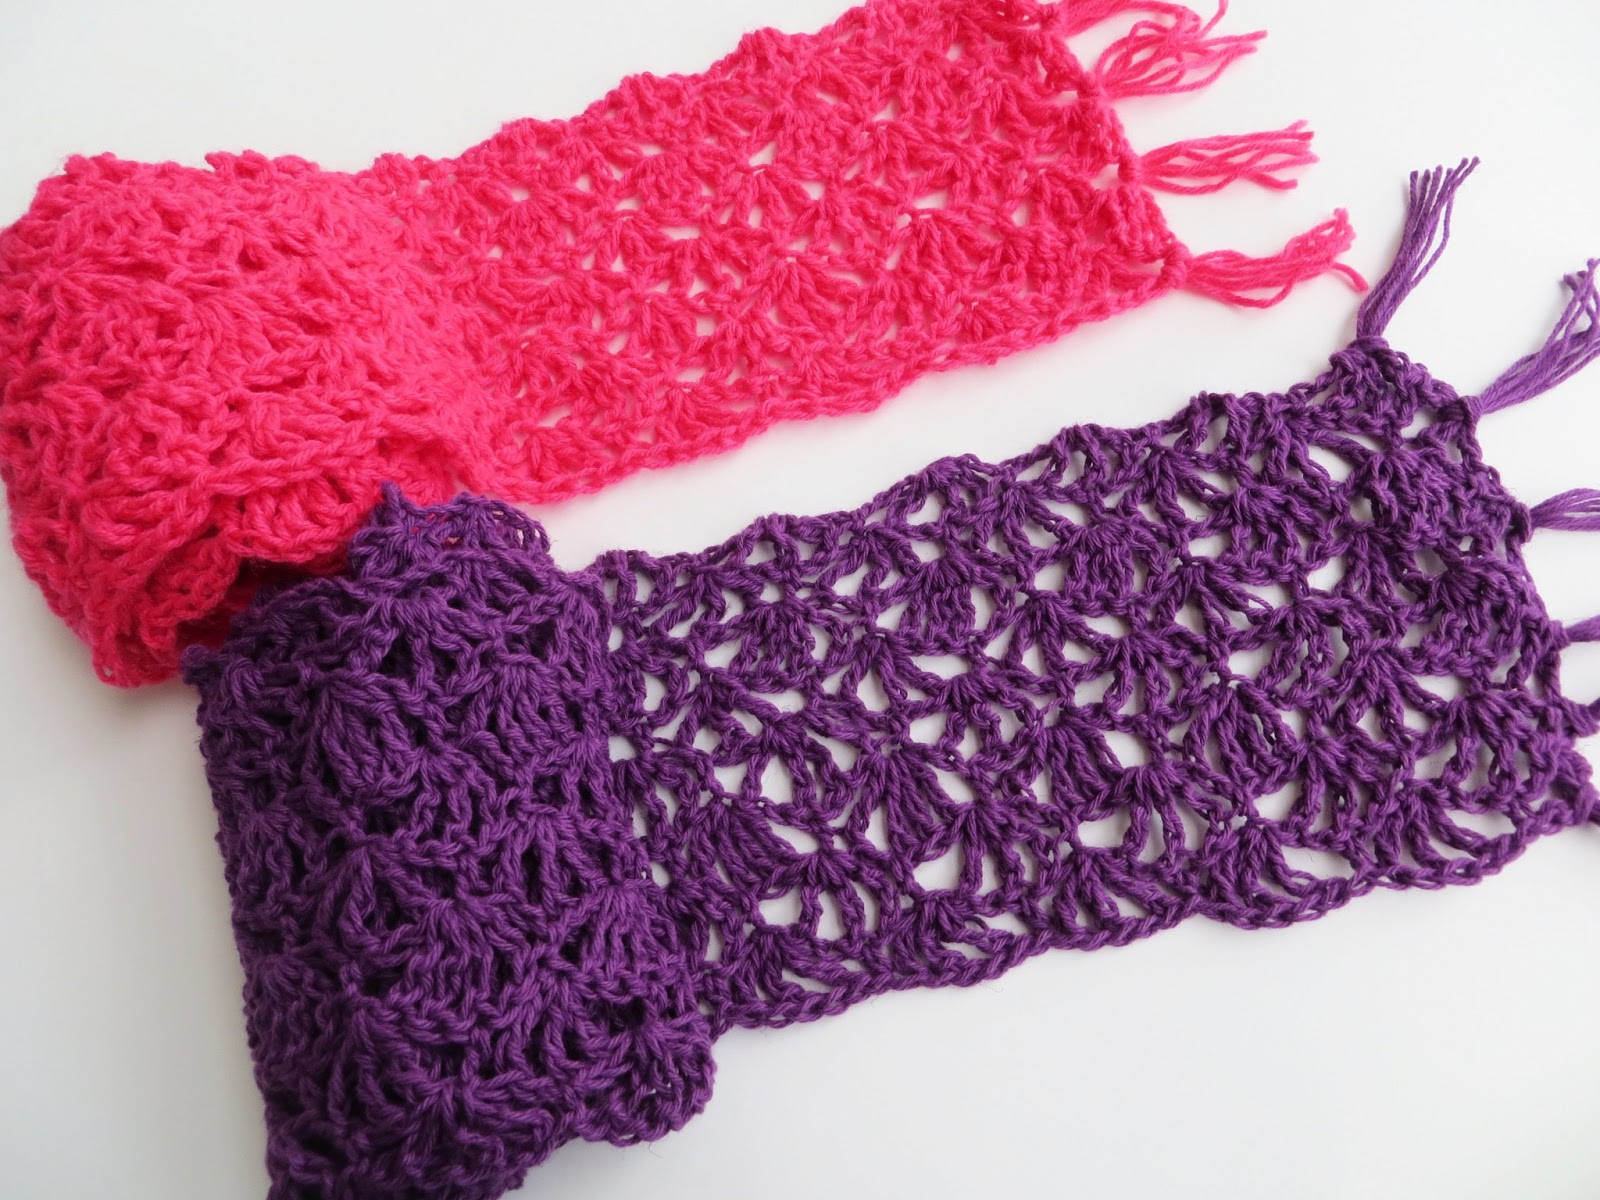 Crocheting Free Patterns : Crochet Dreamz: Alana Lacy Scarf, Free Crochet Pattern